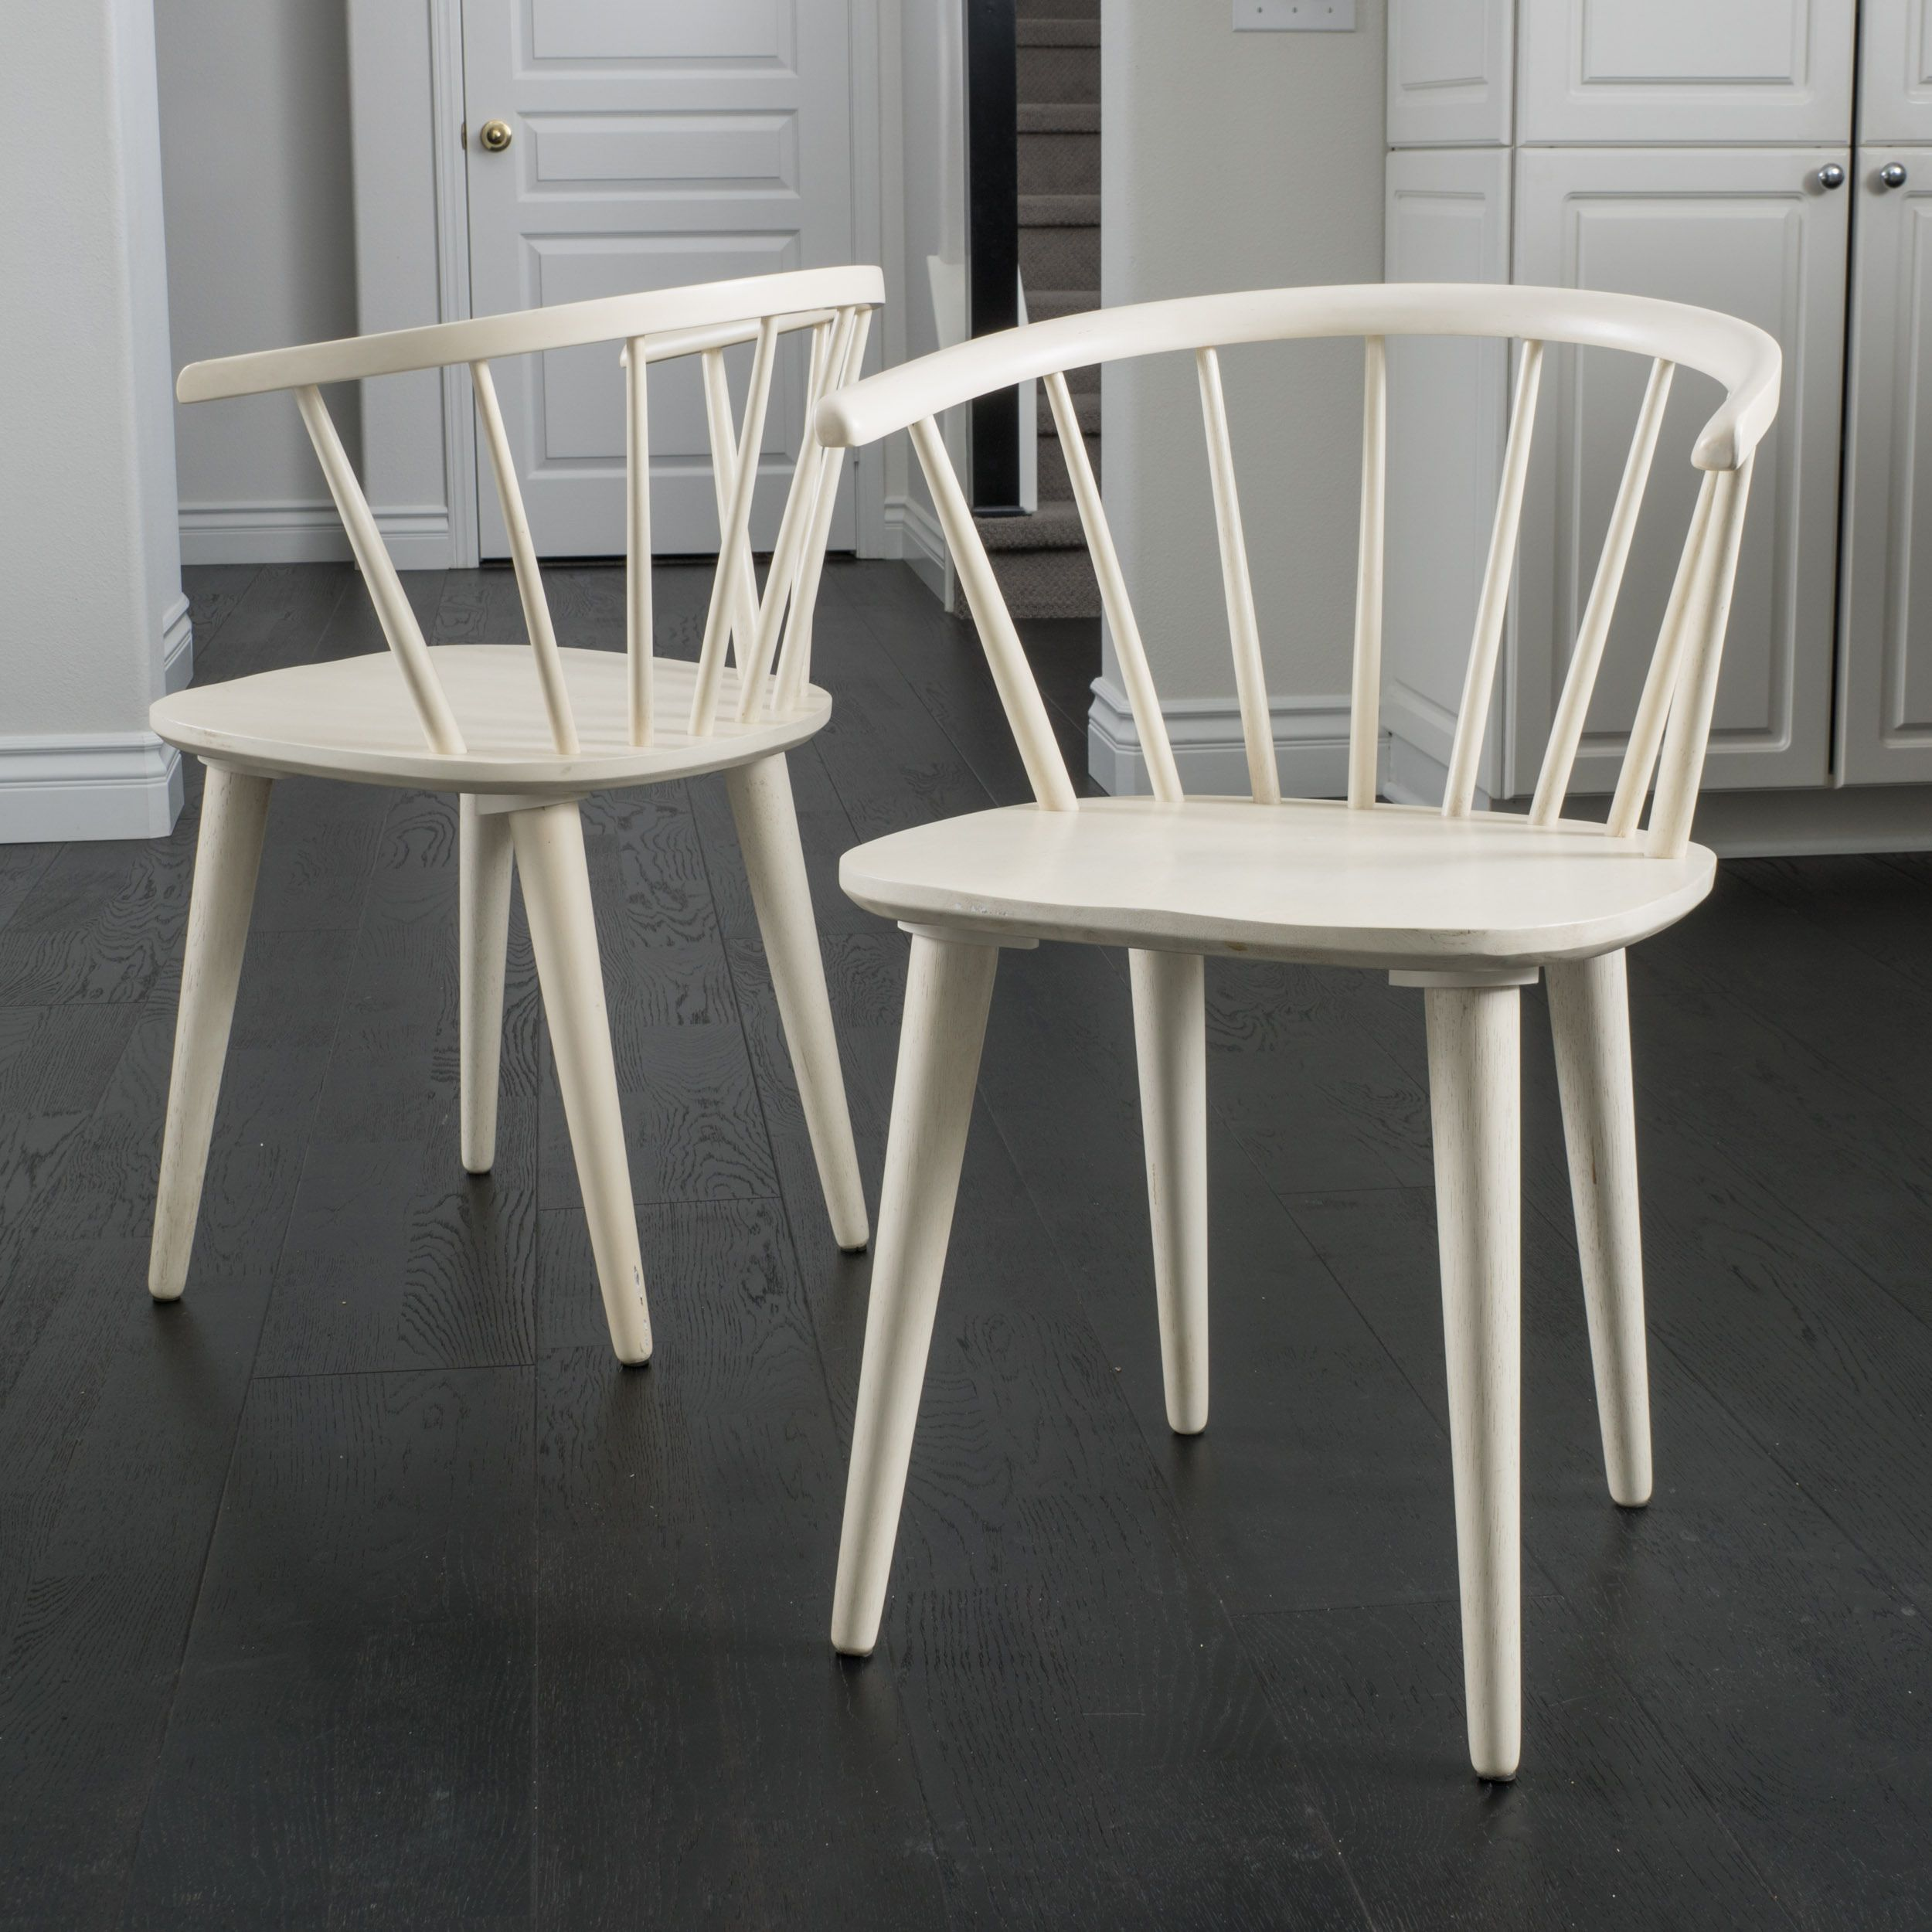 Incredible Countryside Rounded Back Spindle Wood Dining Chair Set Of 2 Pdpeps Interior Chair Design Pdpepsorg